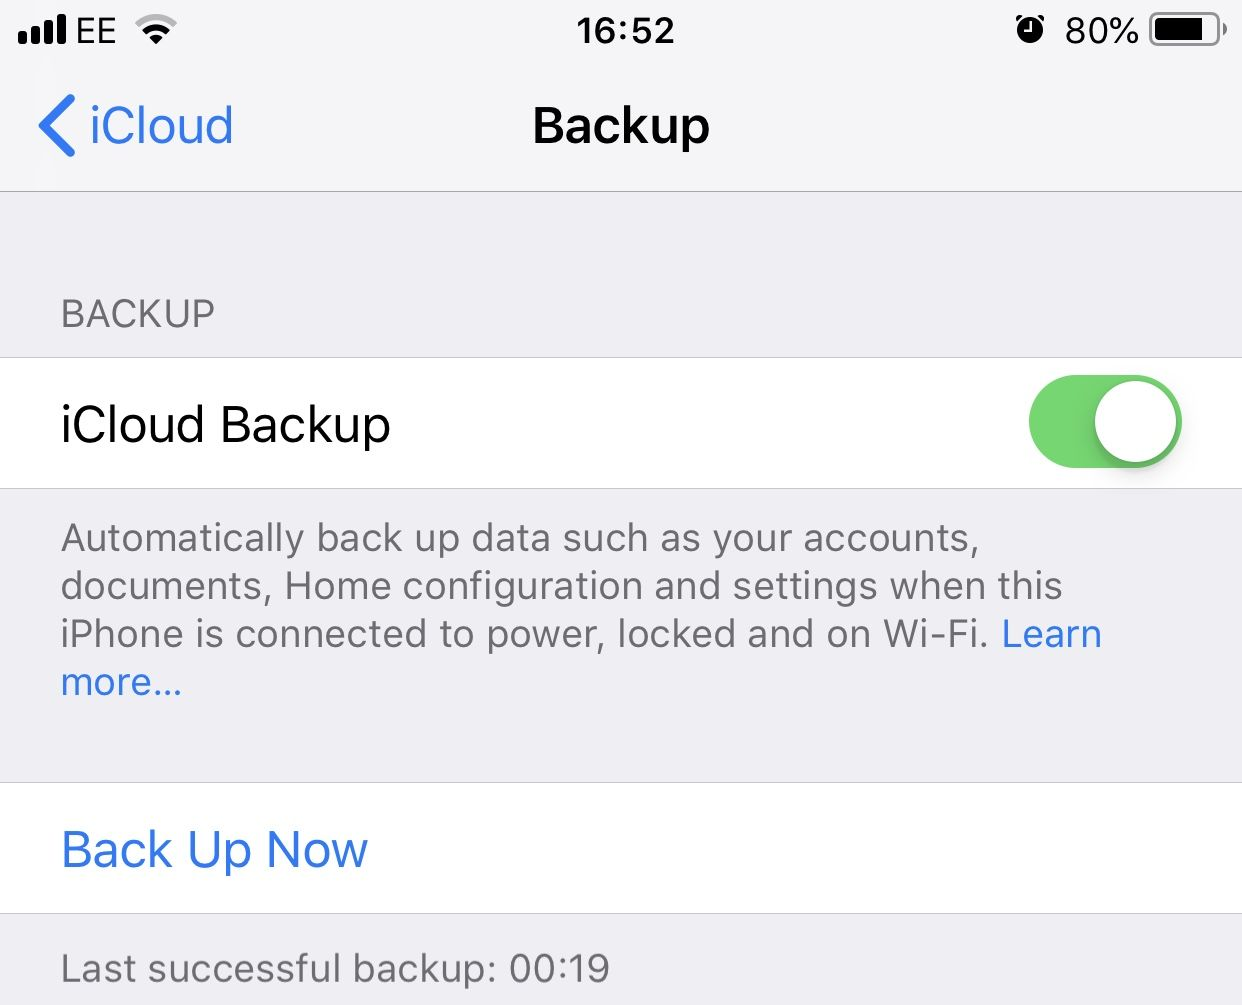 How to Move Data From Old iPhone to New iPhone?